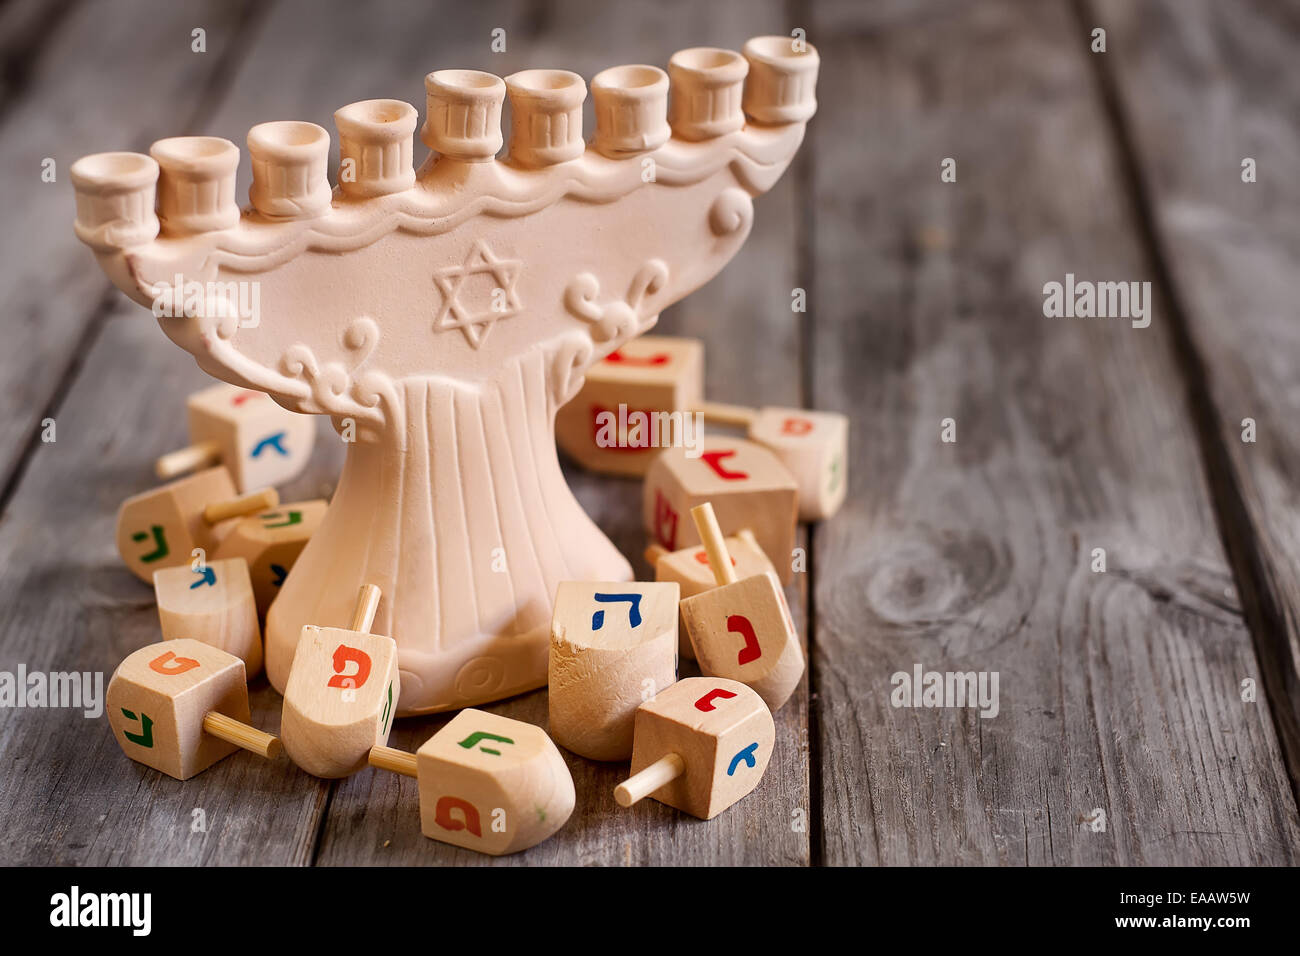 Jewish holiday hannukah symbols - menorah and wooden dreidels. Copy space background. - Stock Image